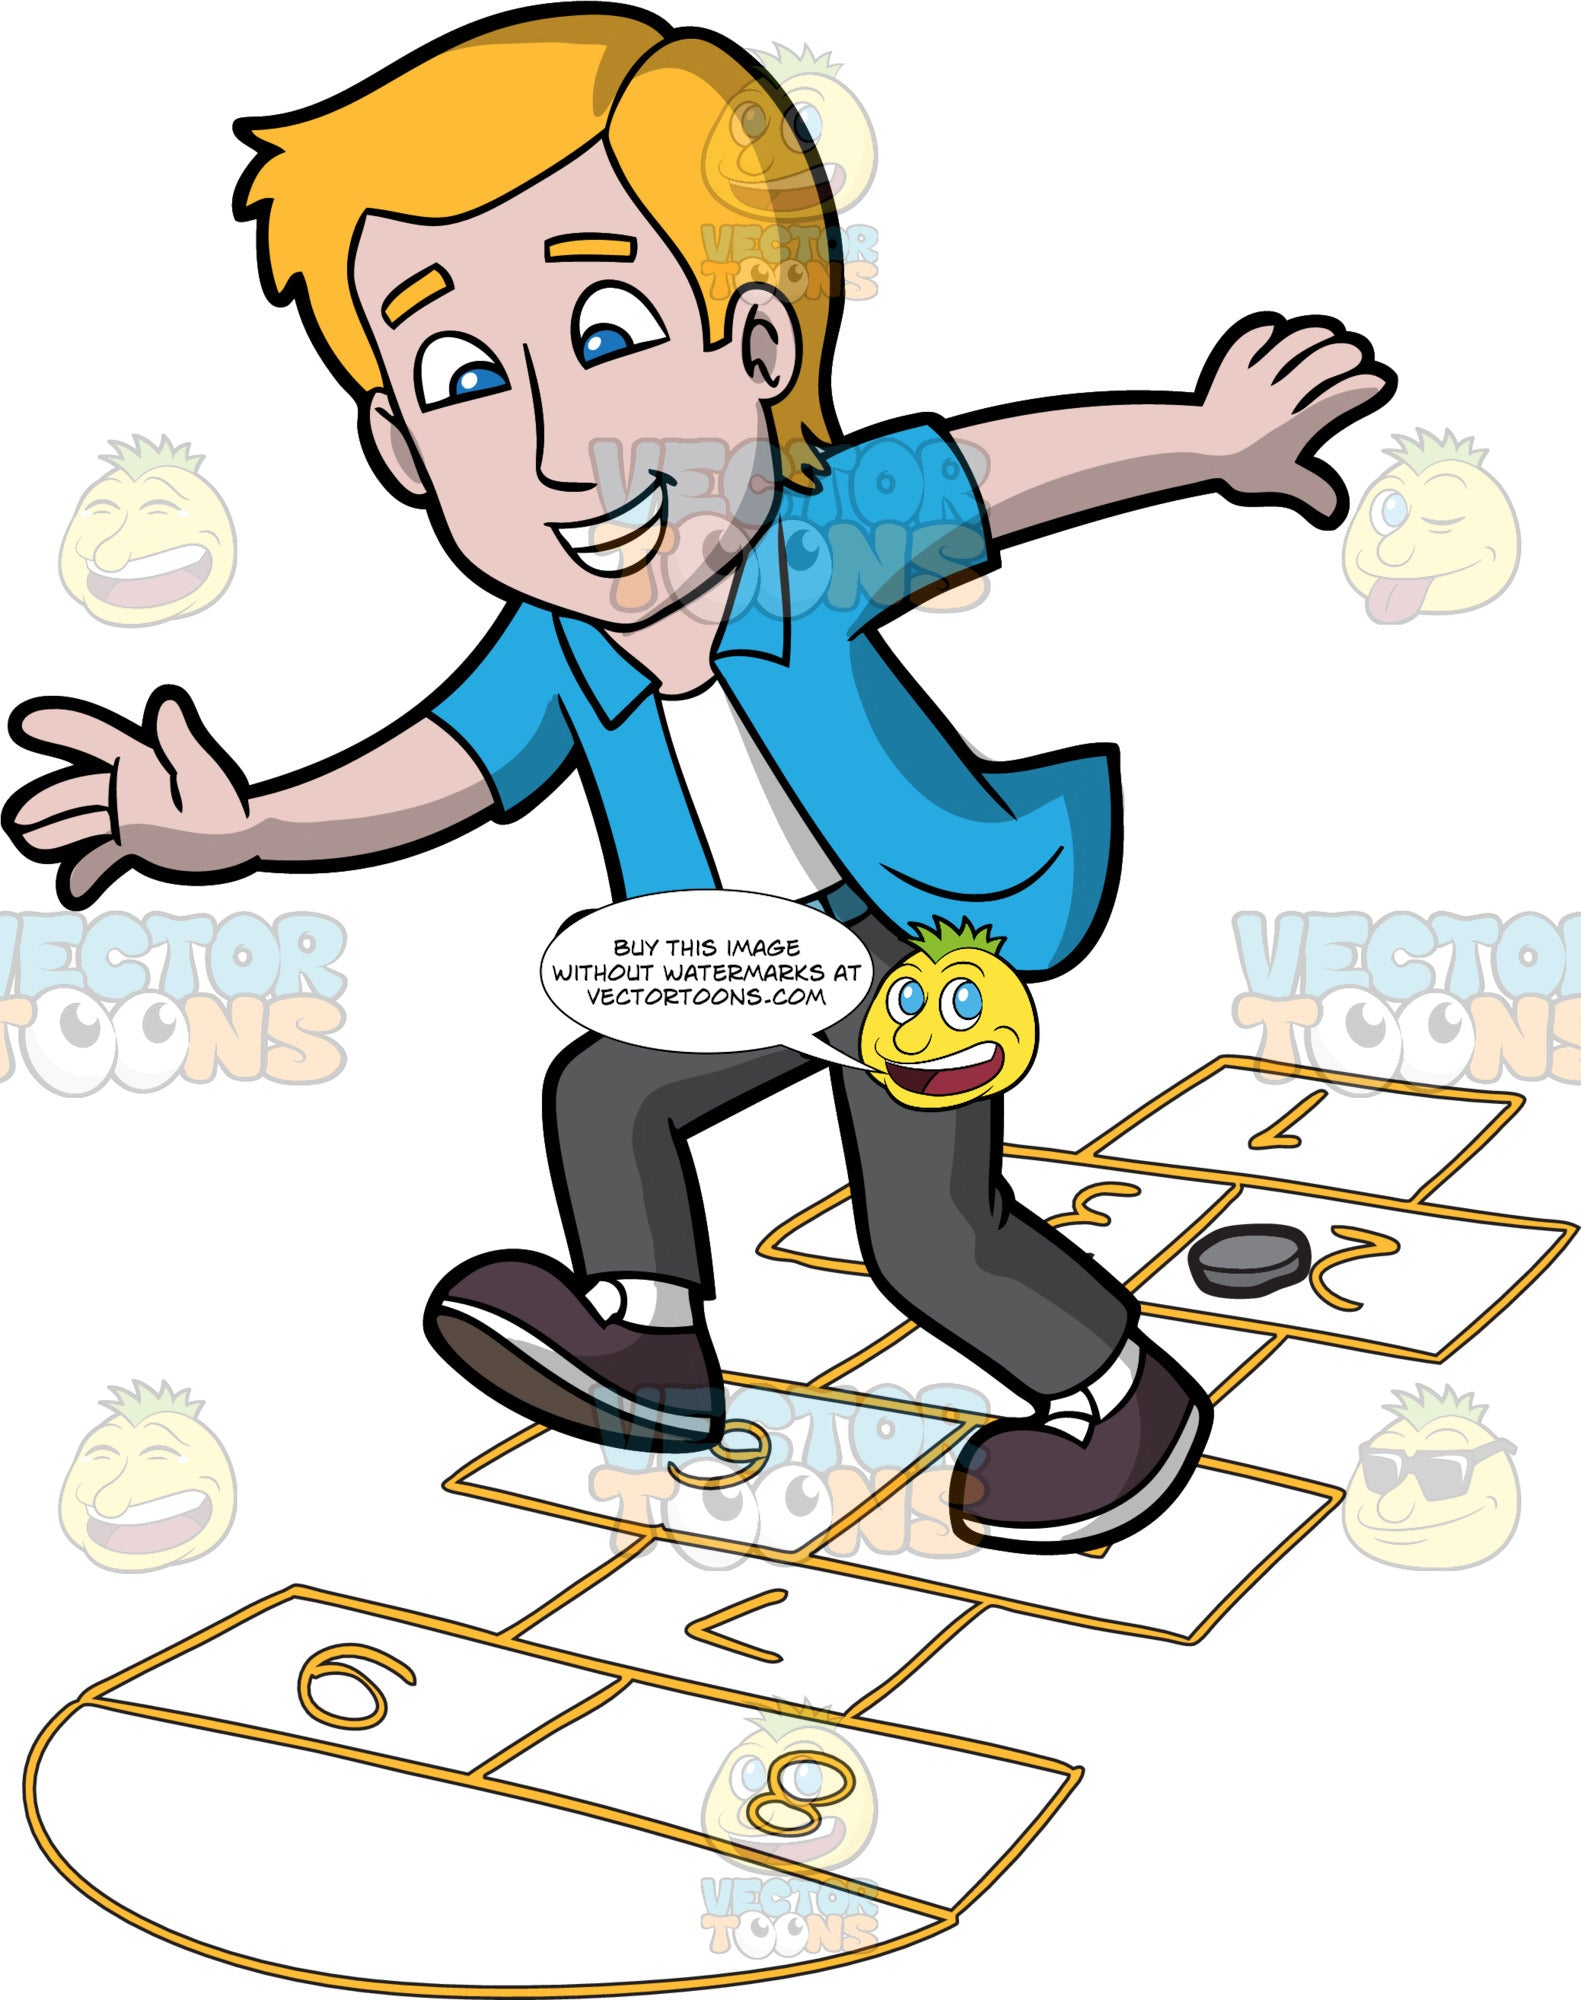 A Joyful Man Playing Hopscotch. A man with blonde hair, wearing a white tank top under an unbuttoned blue shirt, gray pants, dark brown with white shoes, grins while playing hopscotch, as he jumps on numbered rectangles outlined on the ground